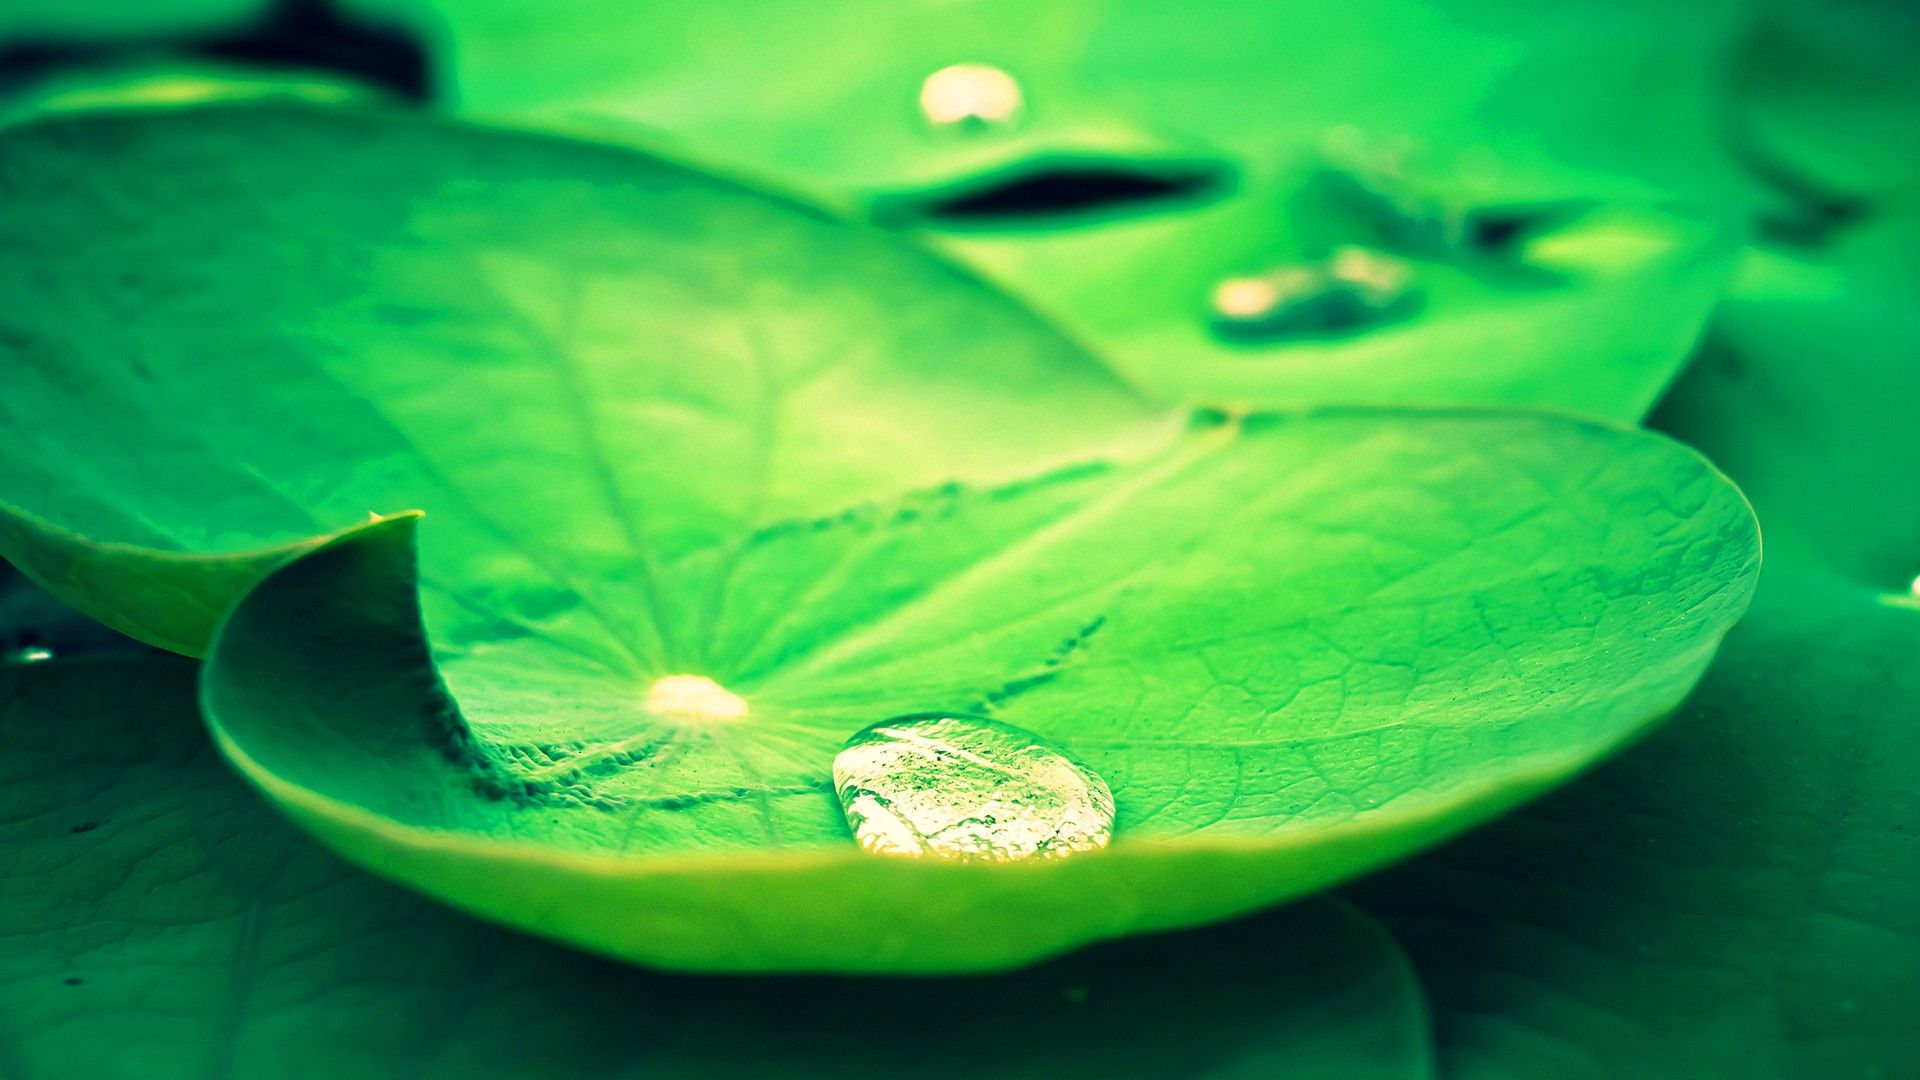 Fresh Lotus Leaves Hd 1080p Wallpapers Download Places To Visit